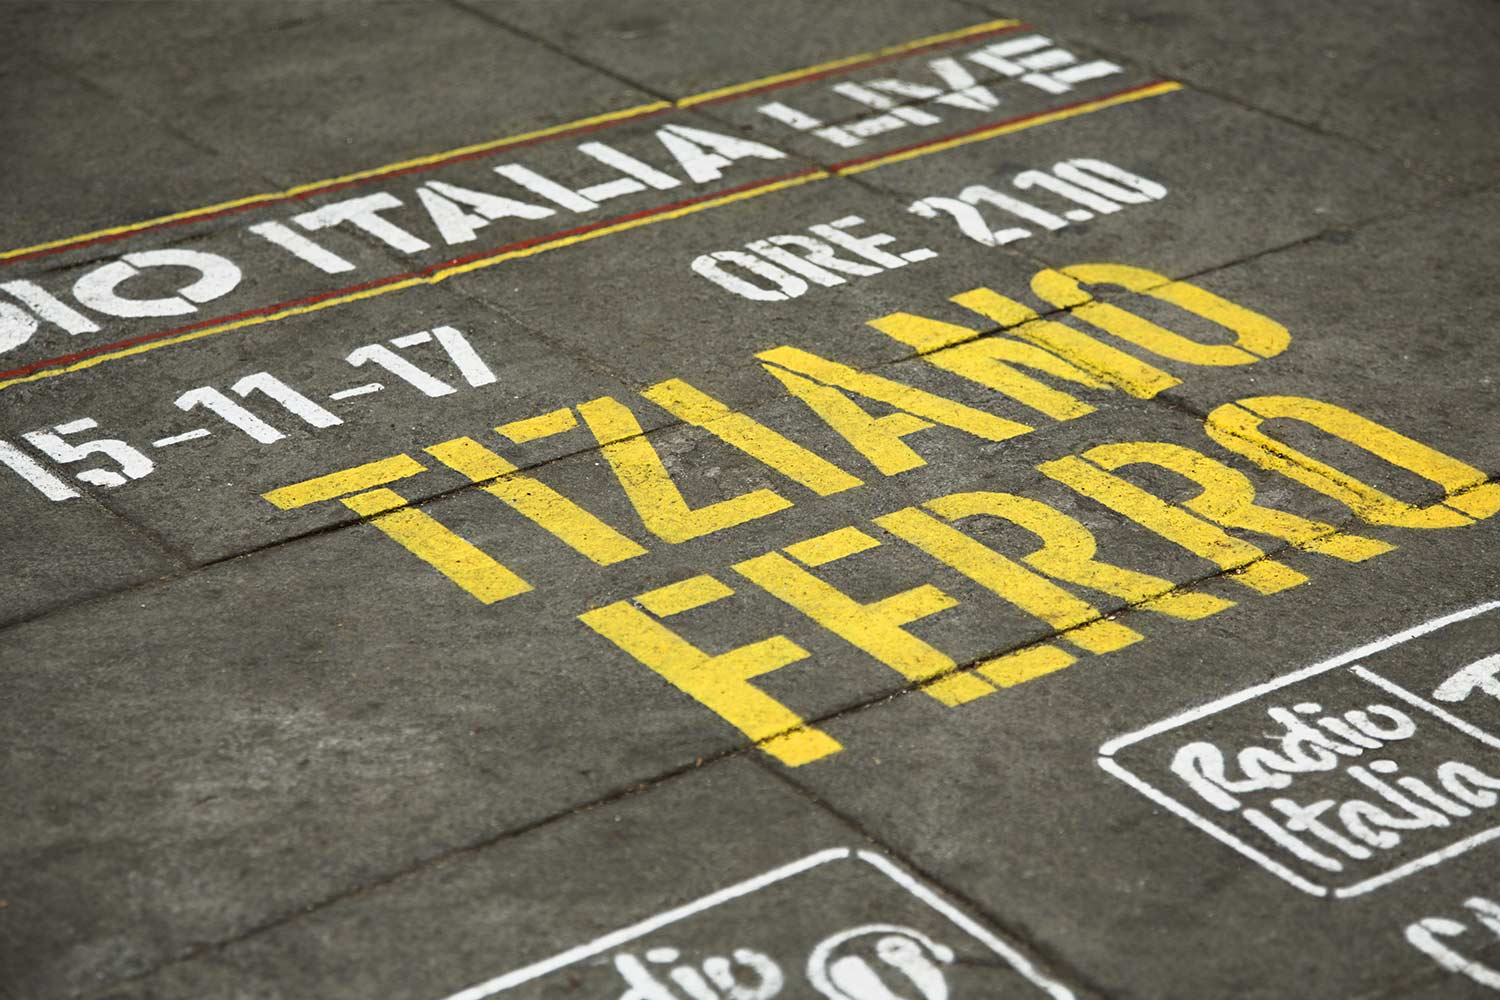 street marketing radio italia tiziano ferro